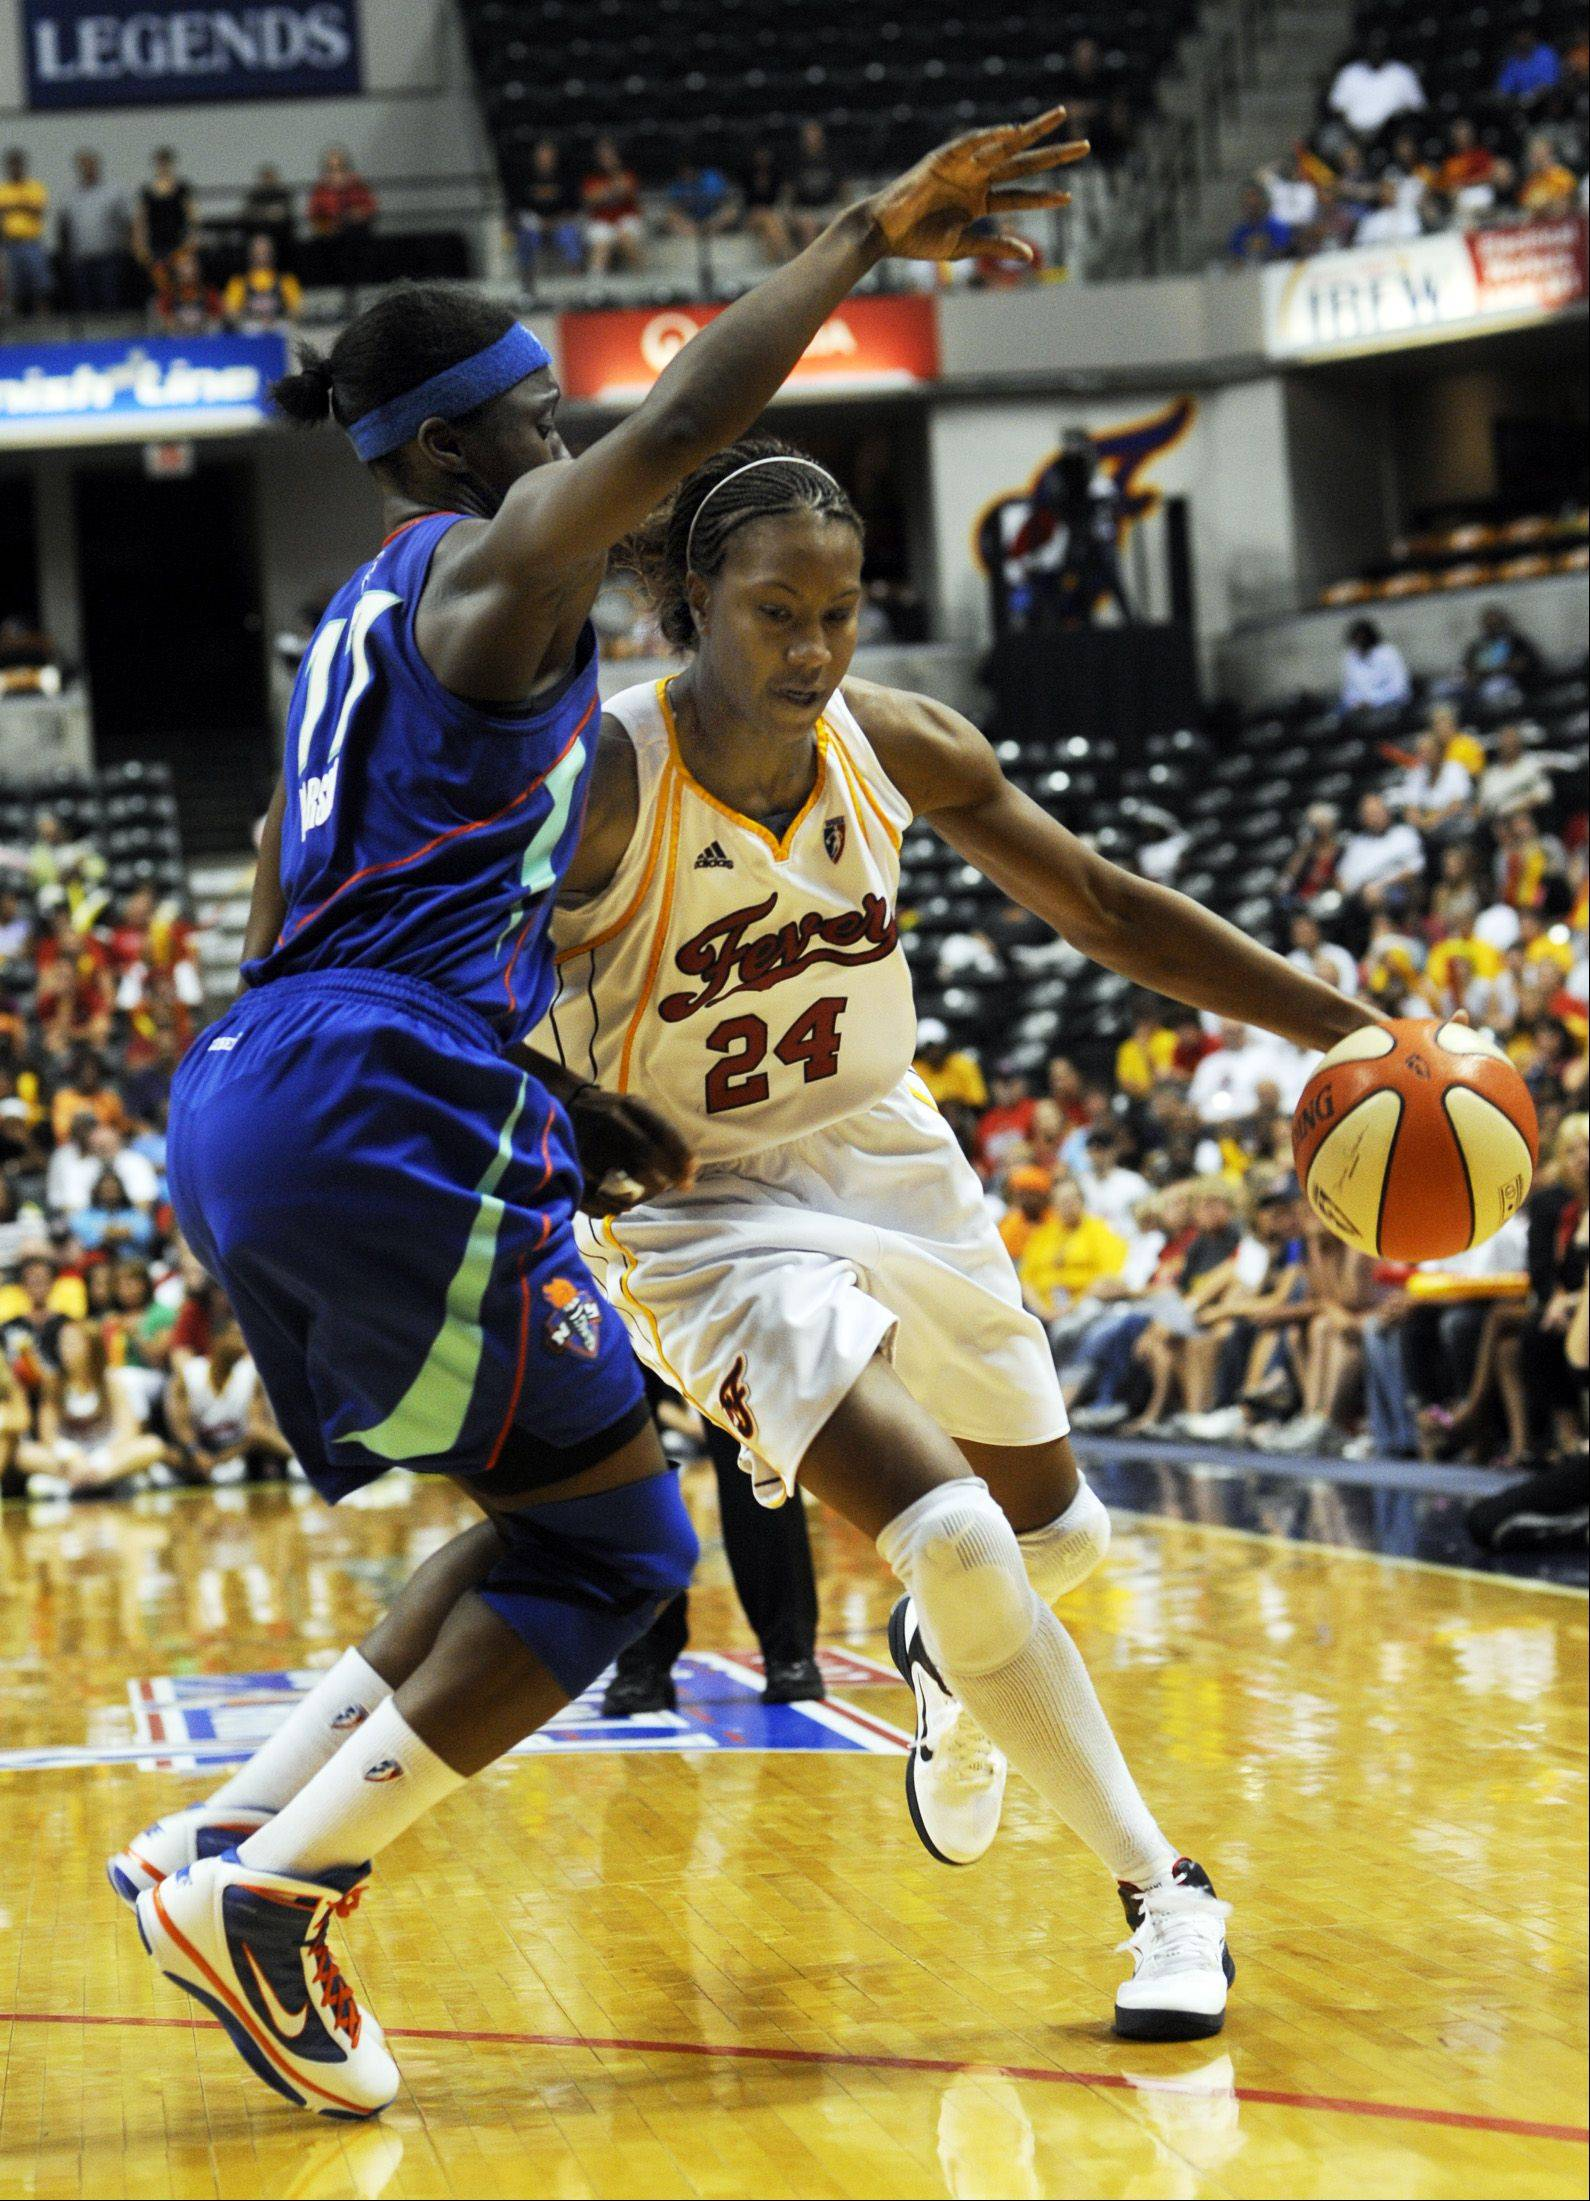 Indiana Fever forward Tamika Catchings, right, drives on New York Liberty forward Essence Carson during the second half of a WNBA Eastern Conference semifinal basketball game in Indianapolis on Sunday, Aug. 29, 2010. Indiana won 75-67. Catchings led Fever scoring with 17.